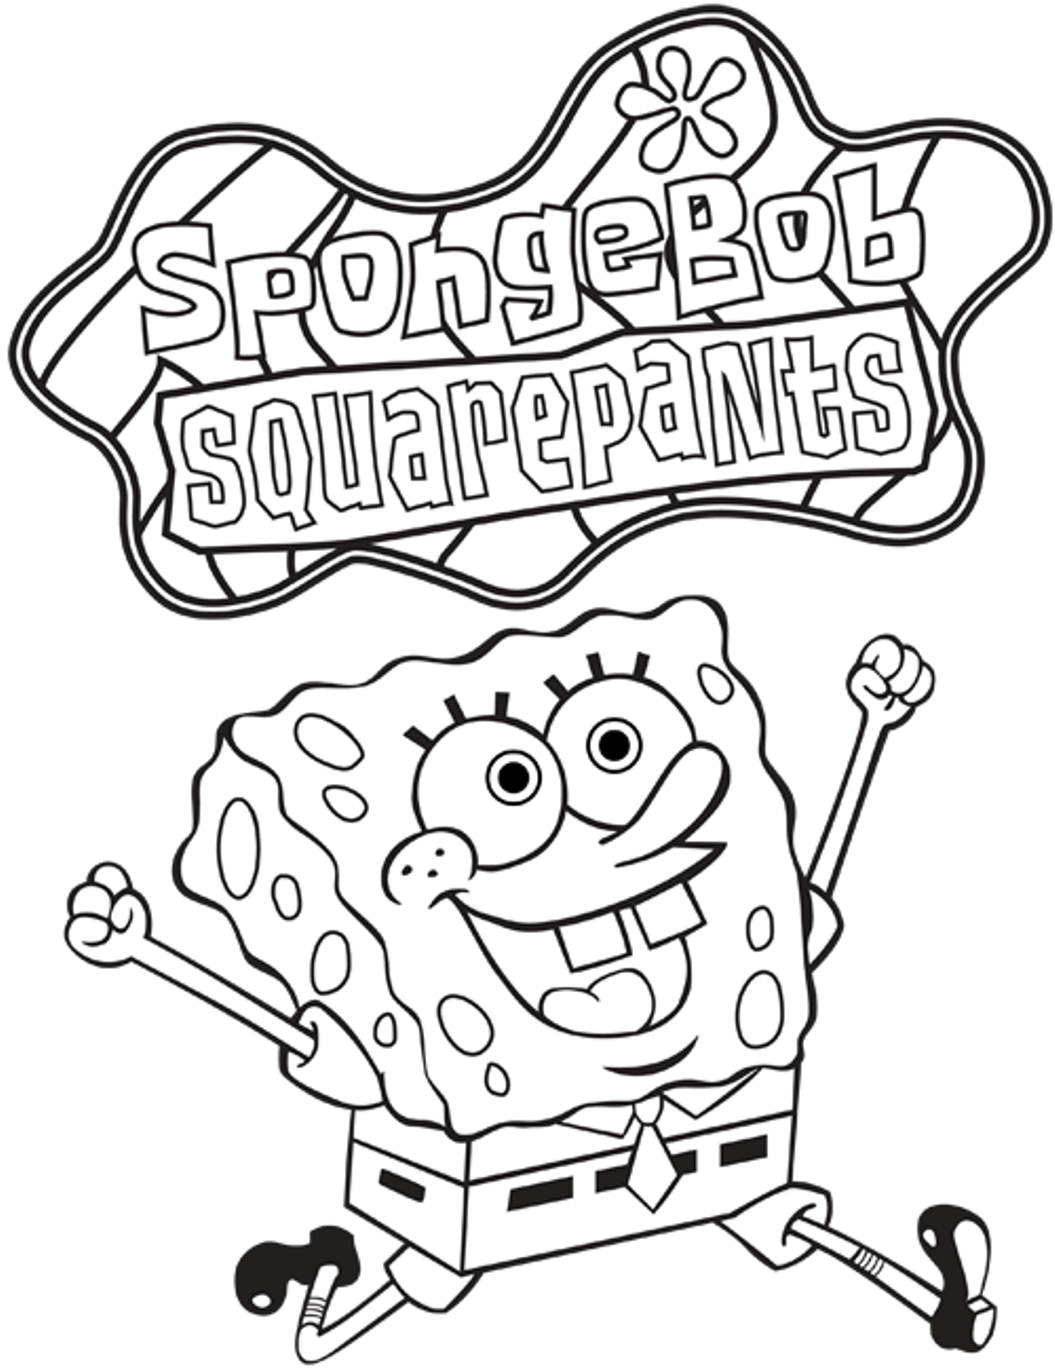 Nickelodeon Coloring Pages Free Nickelodeon Spongebob Coloring Pages For Kids